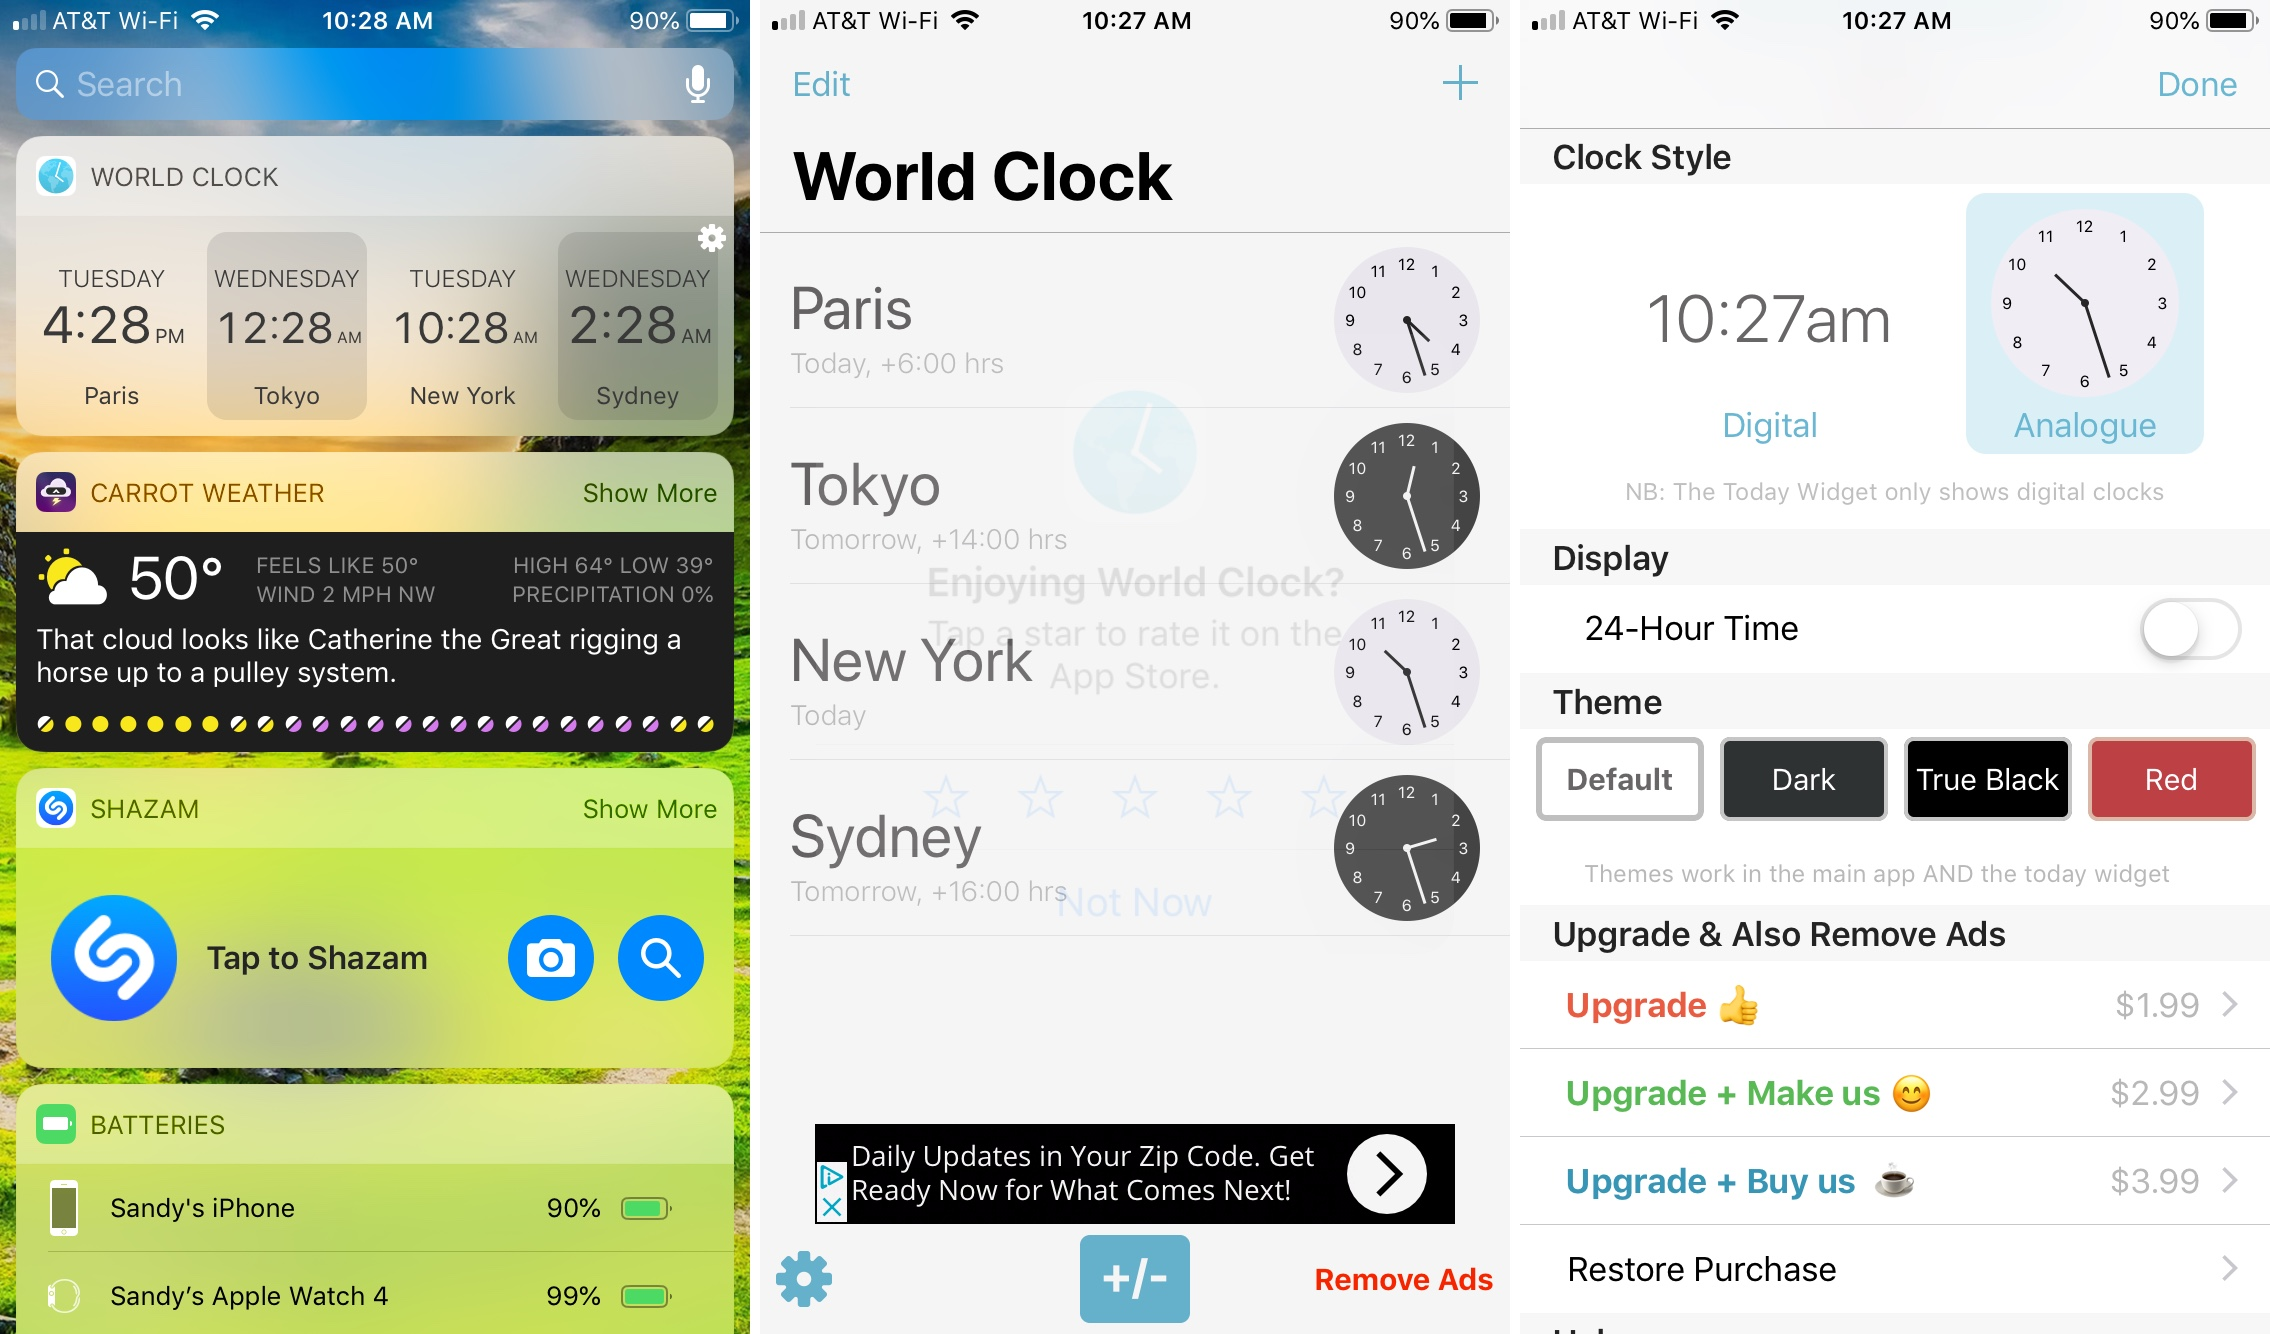 World Clock Time Widget app on iPhone